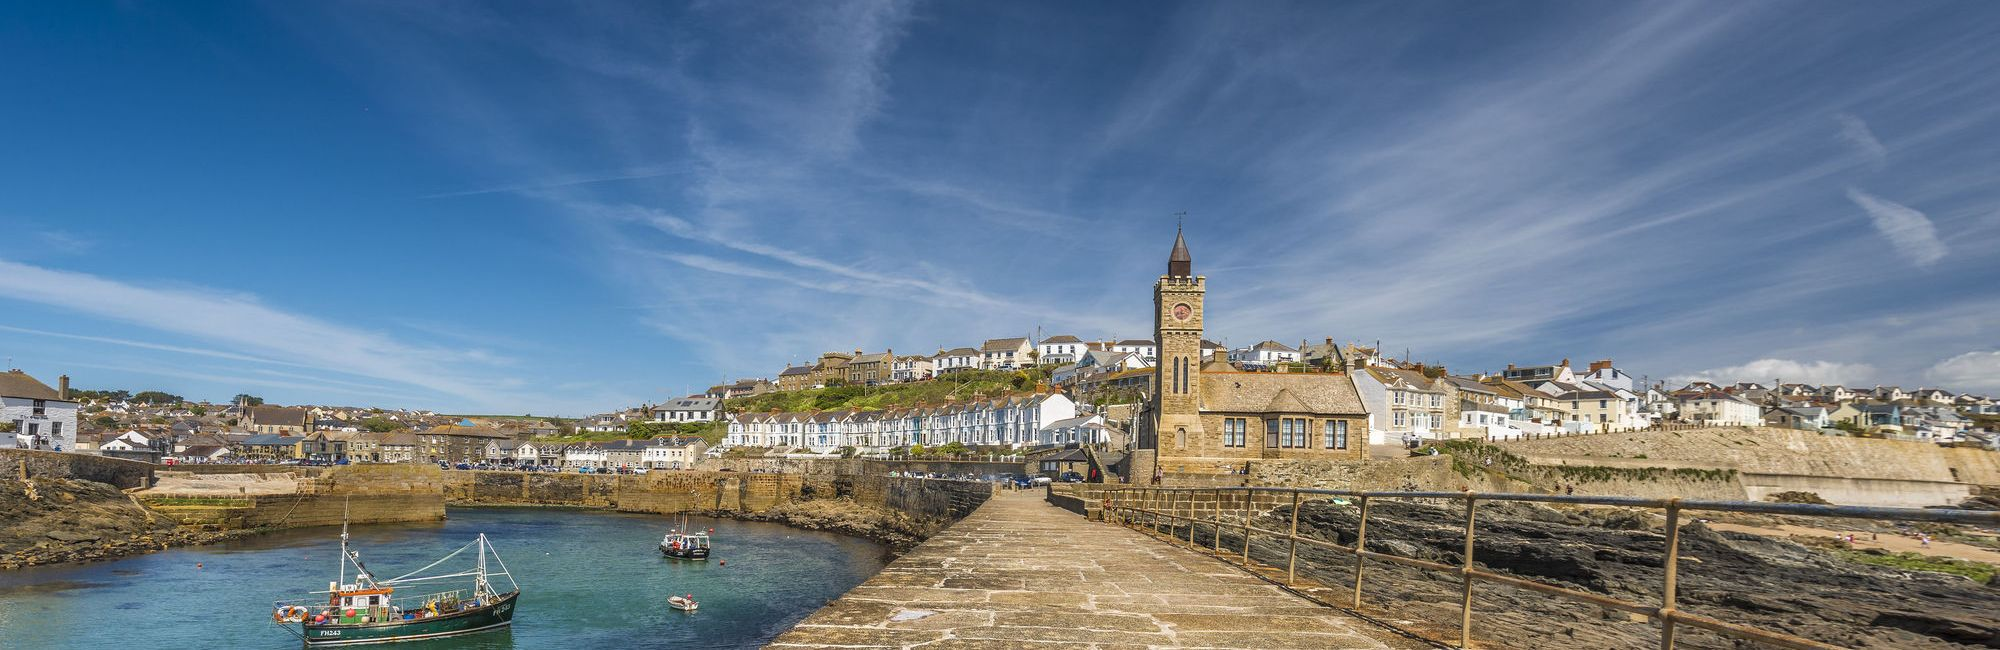 Porthleven - Credit Geoff Squibb